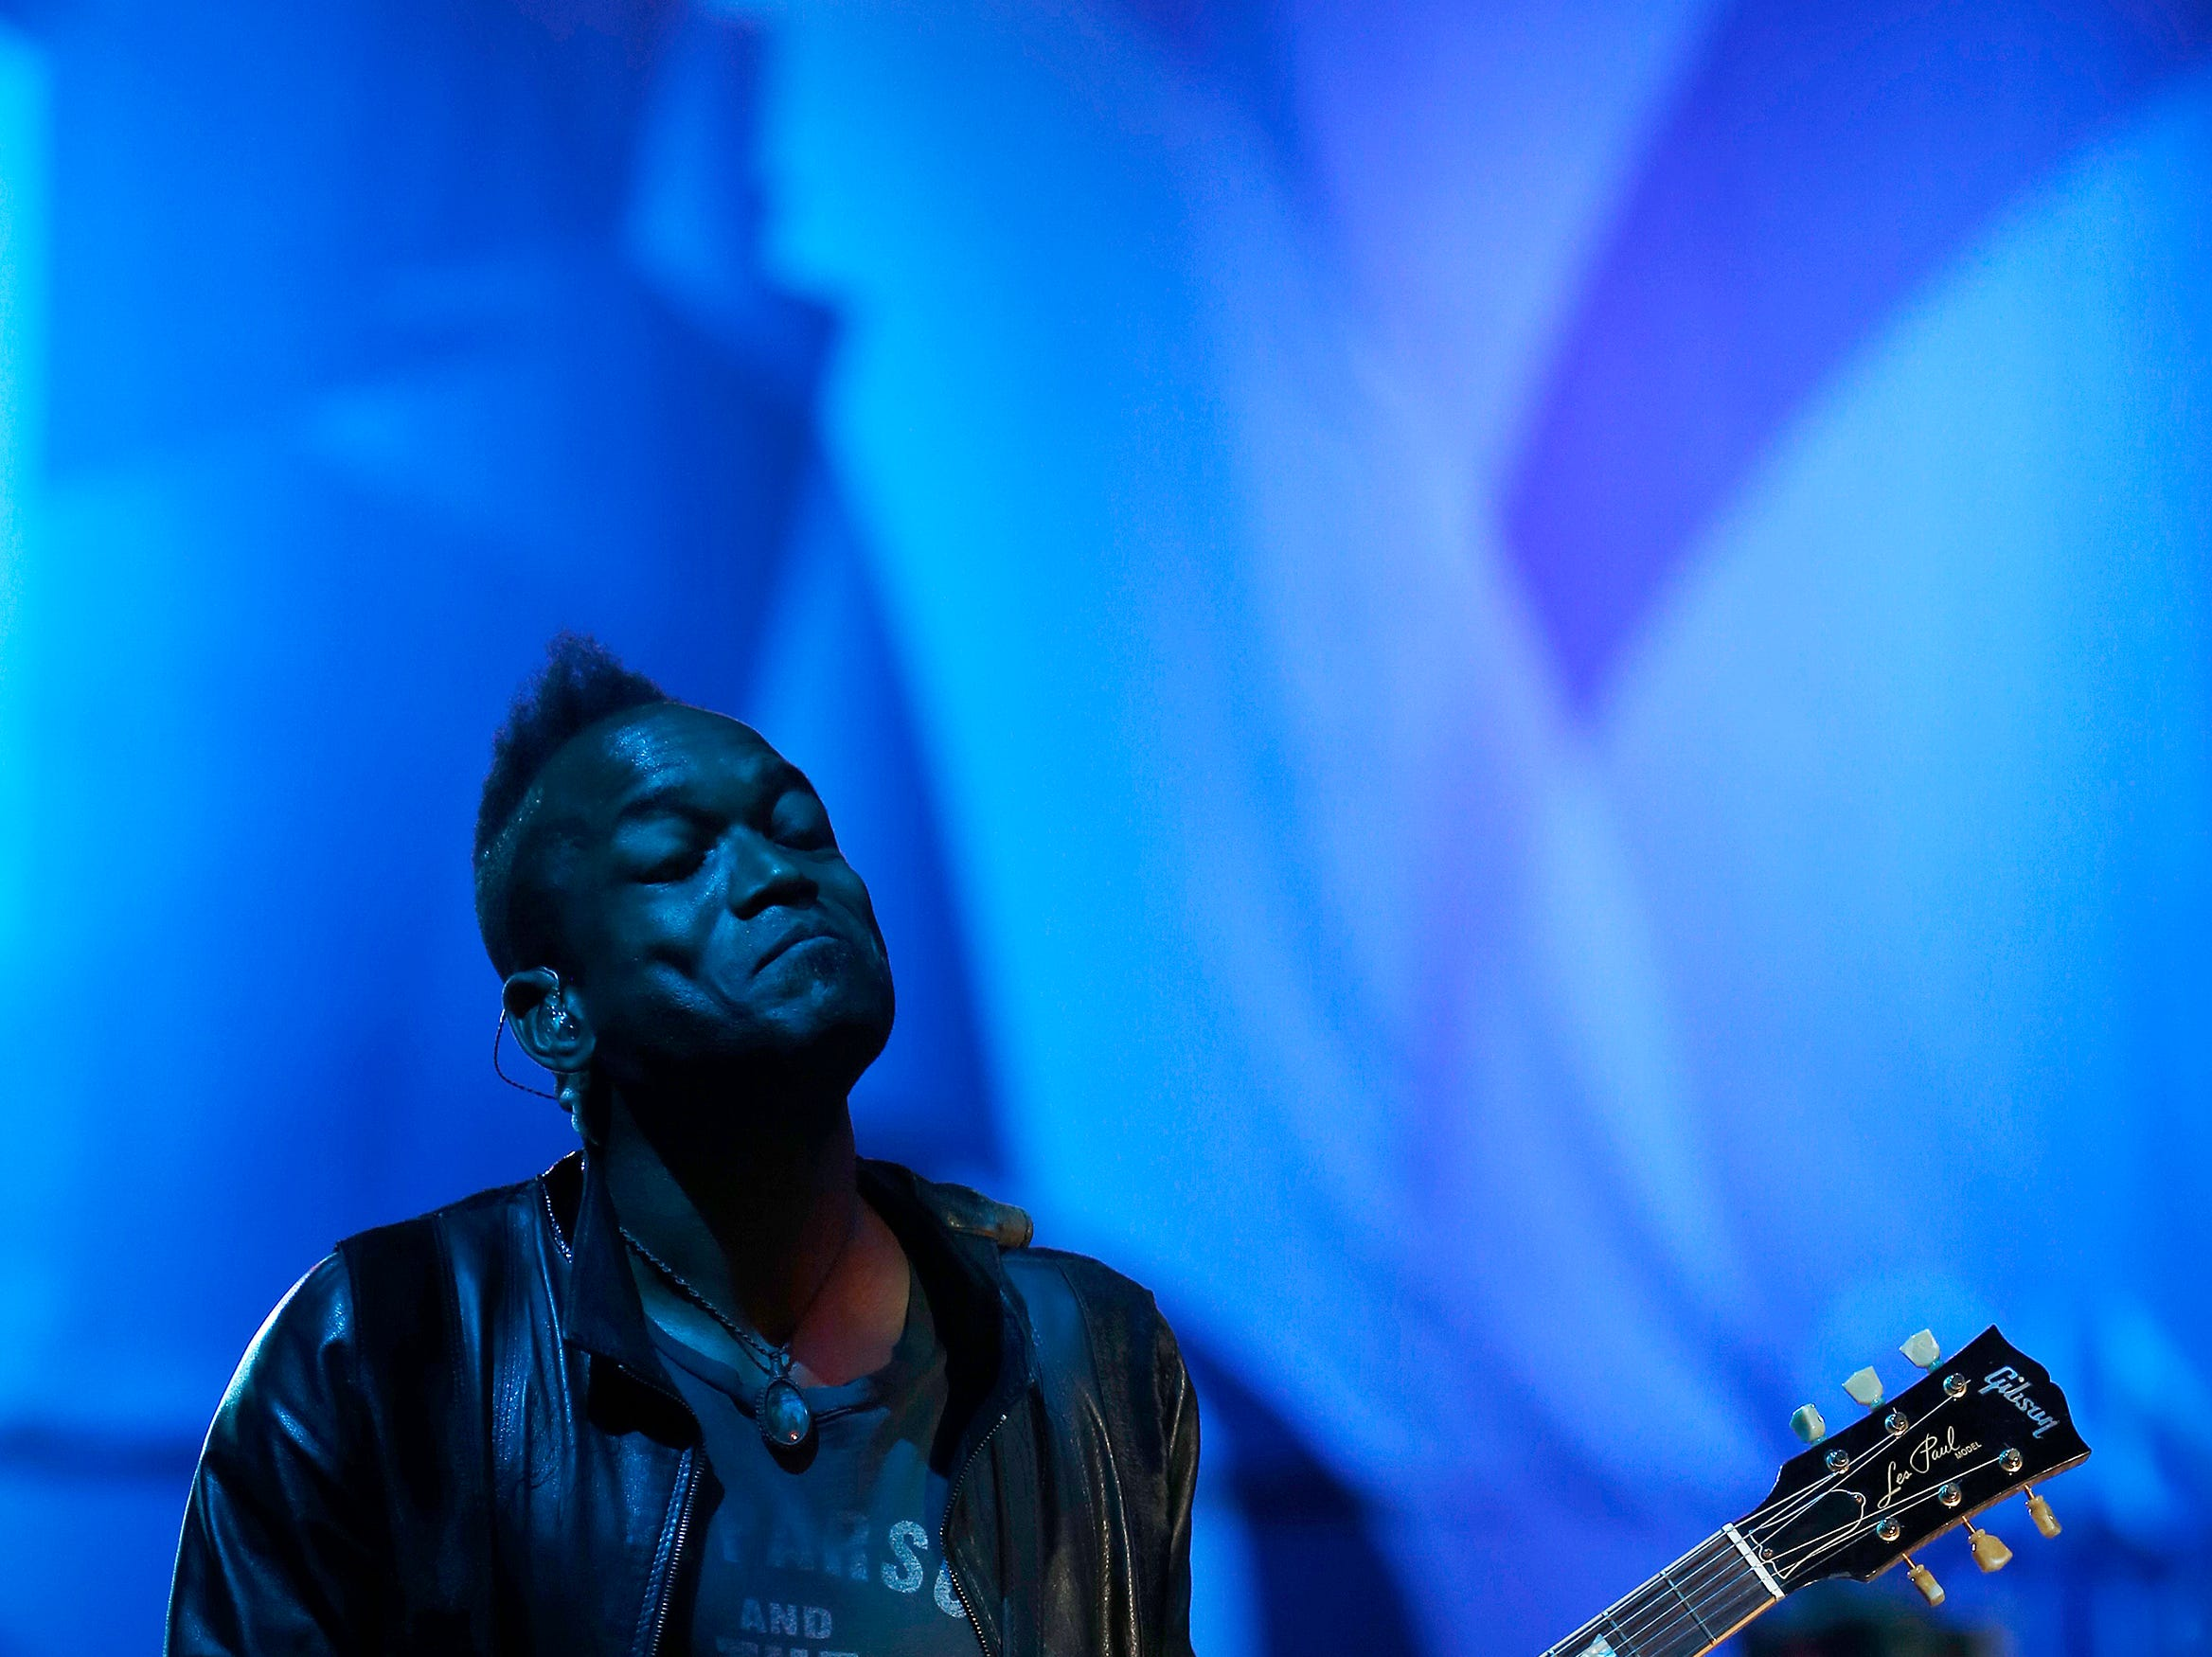 """Captain"" Kirk Douglas of The Roots performs during the Cincinnati Music Festival."